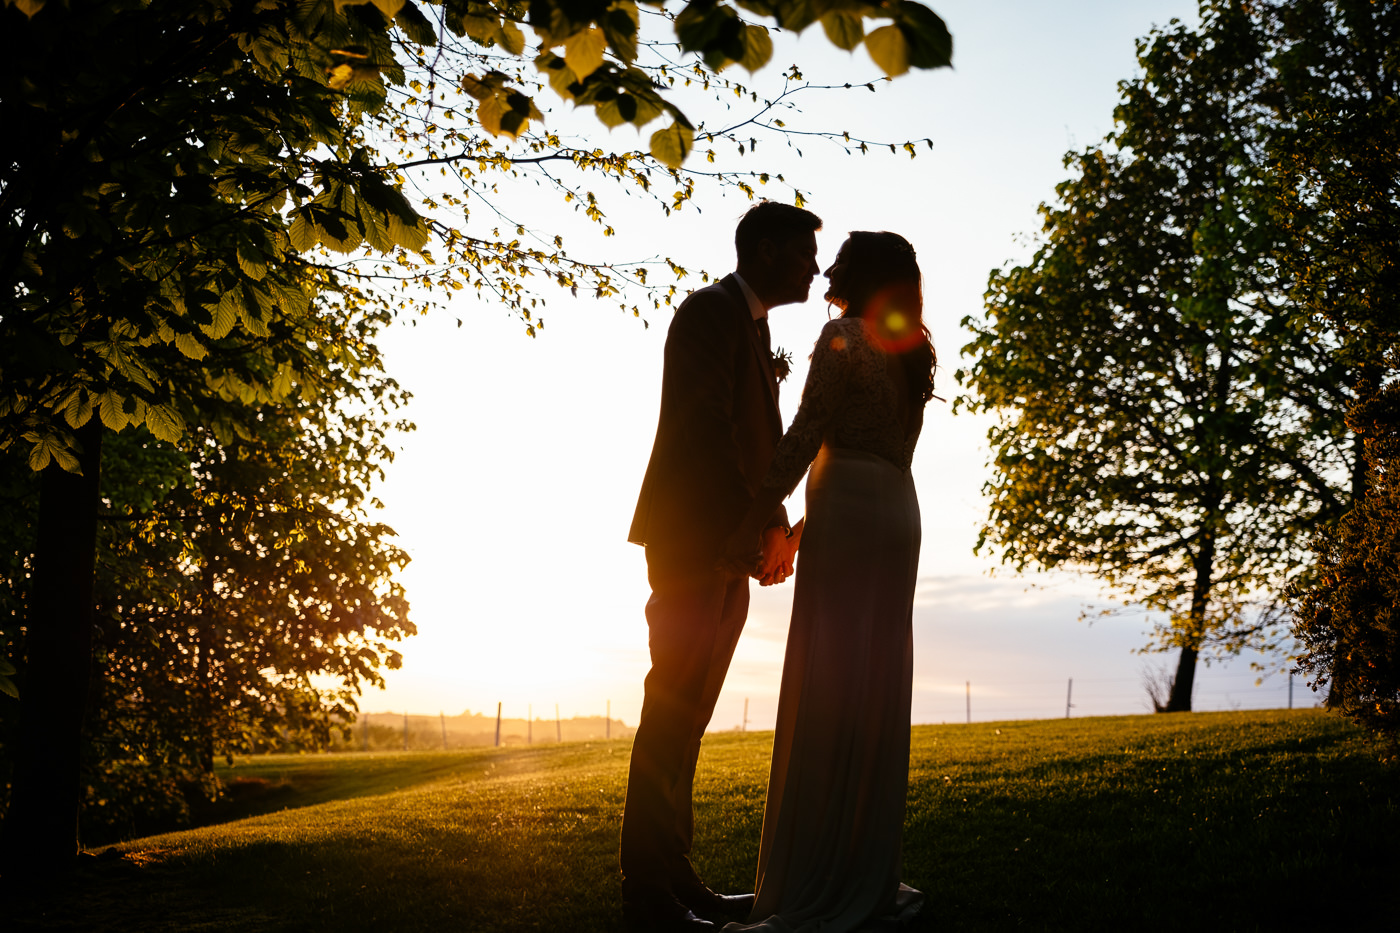 kilshane house wedding photographer tipperary 0907